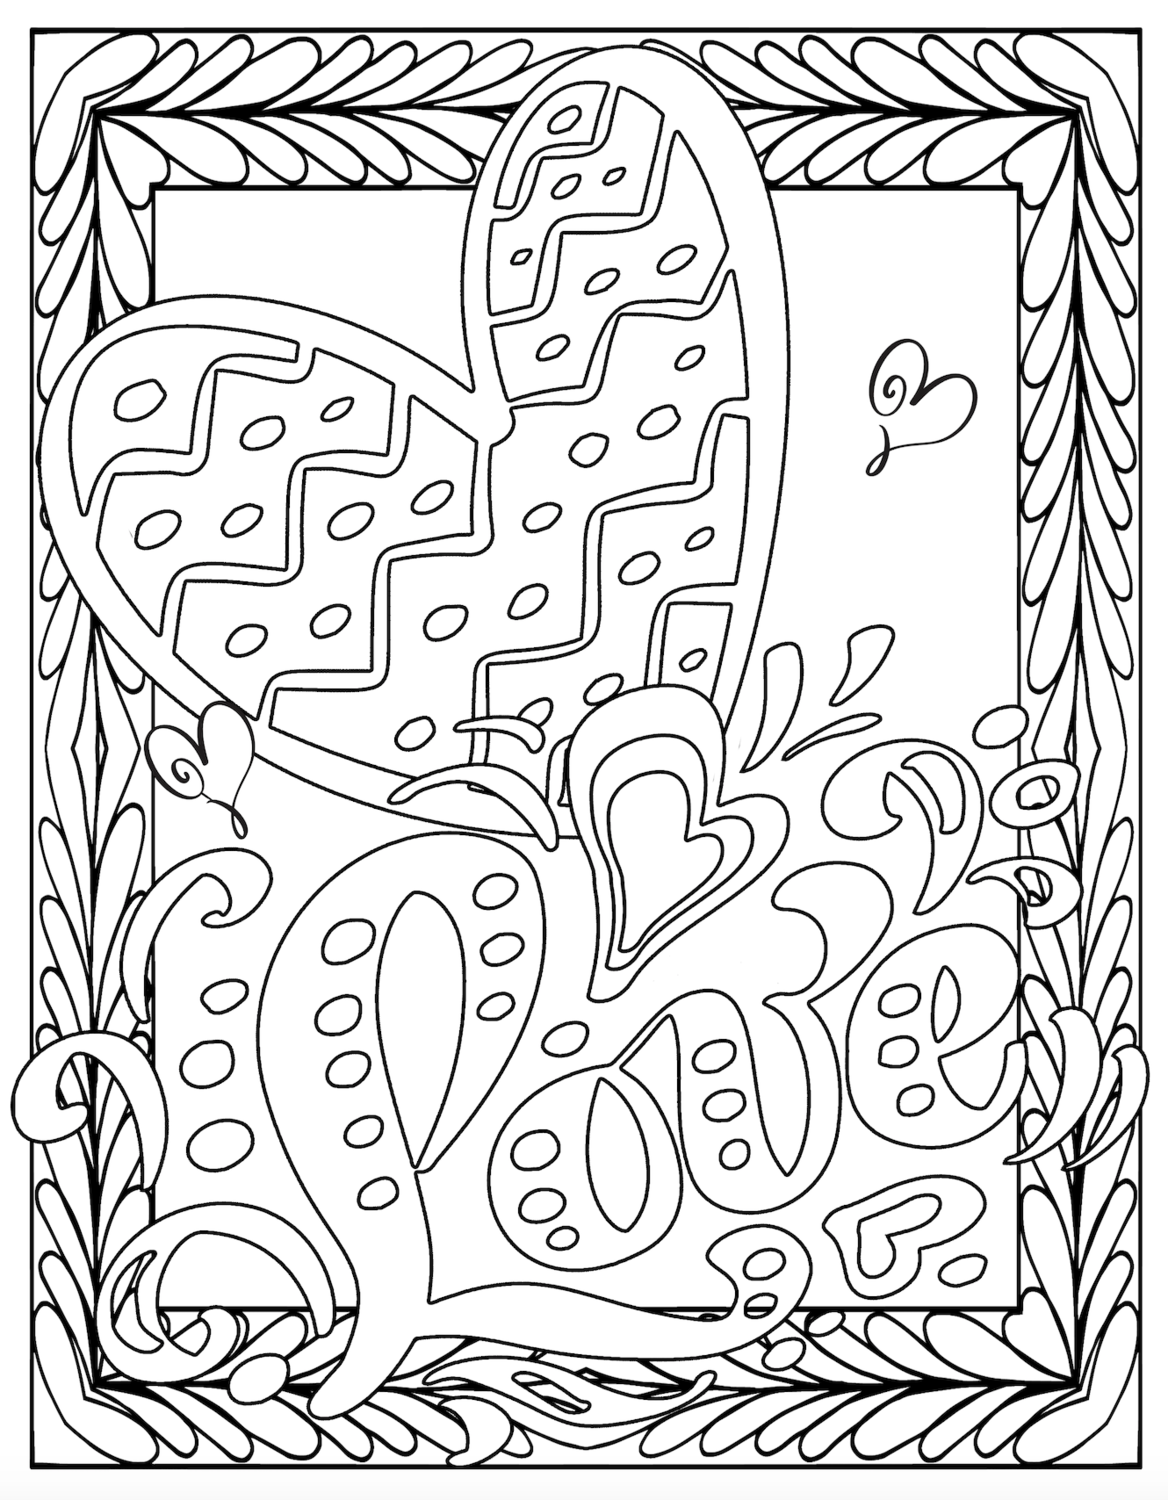 coloring picture love i love you coloring pages to download and print for free love picture coloring